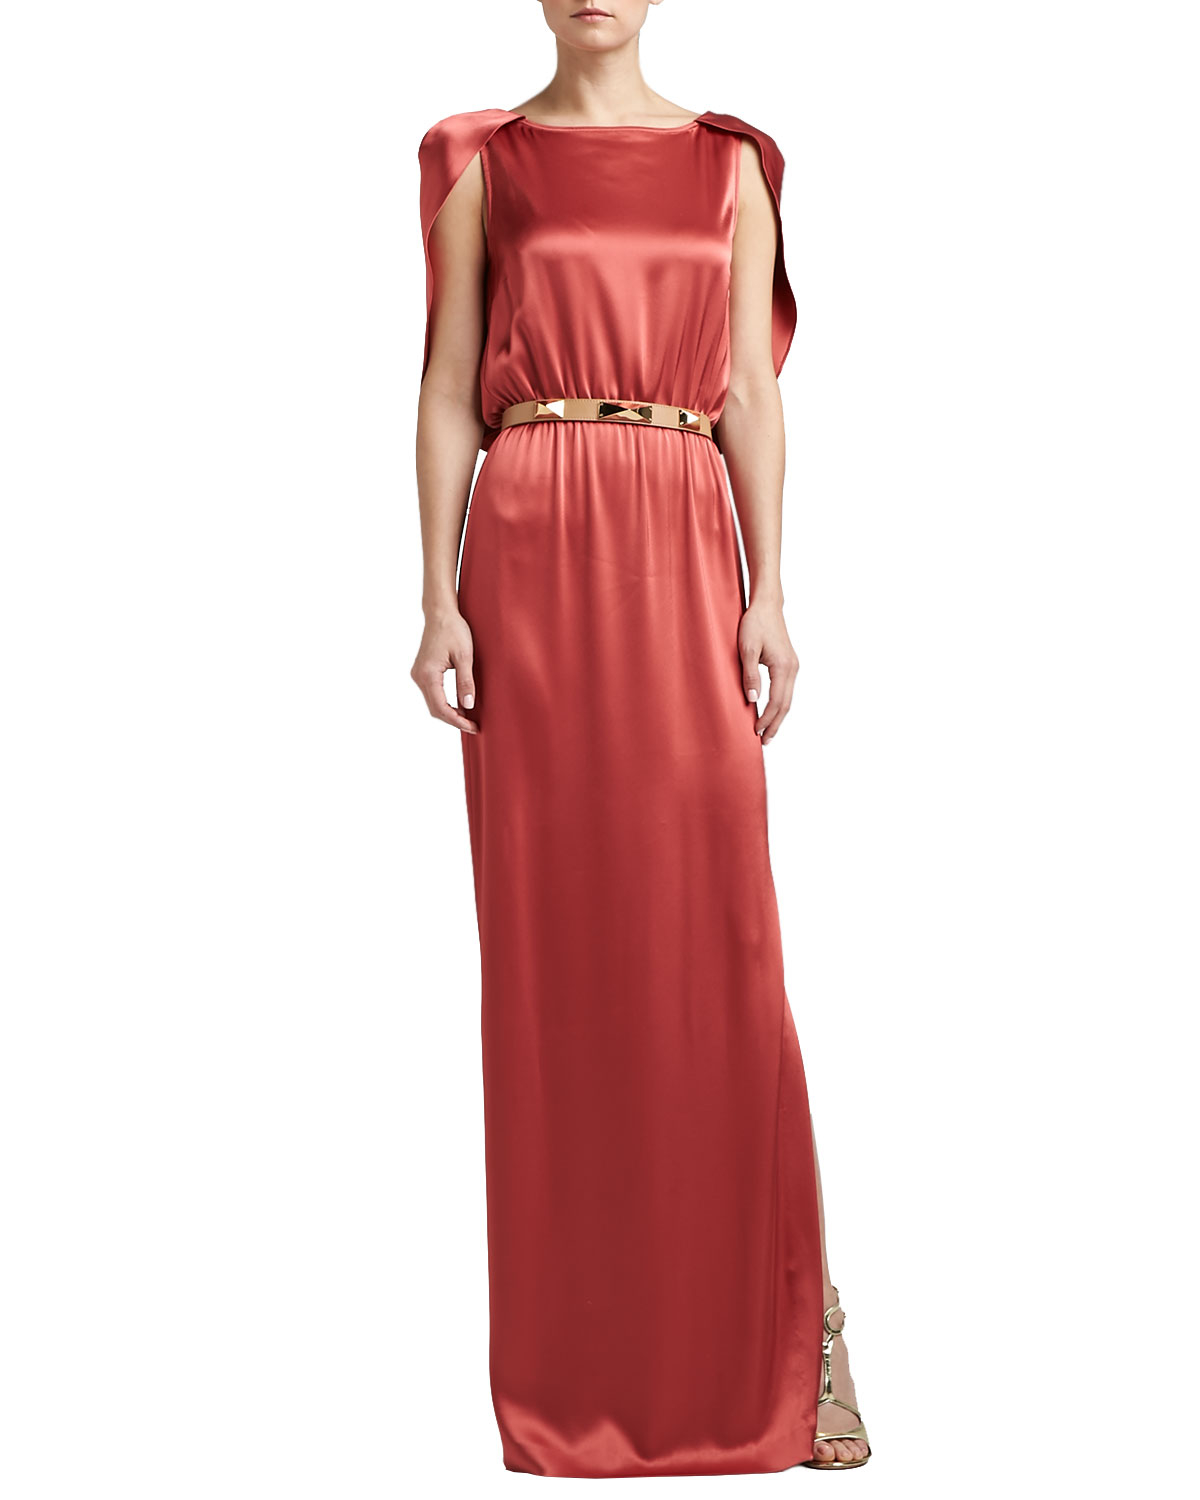 Lyst - St. John Liquid Satin Evening Gown with Capelet in Red